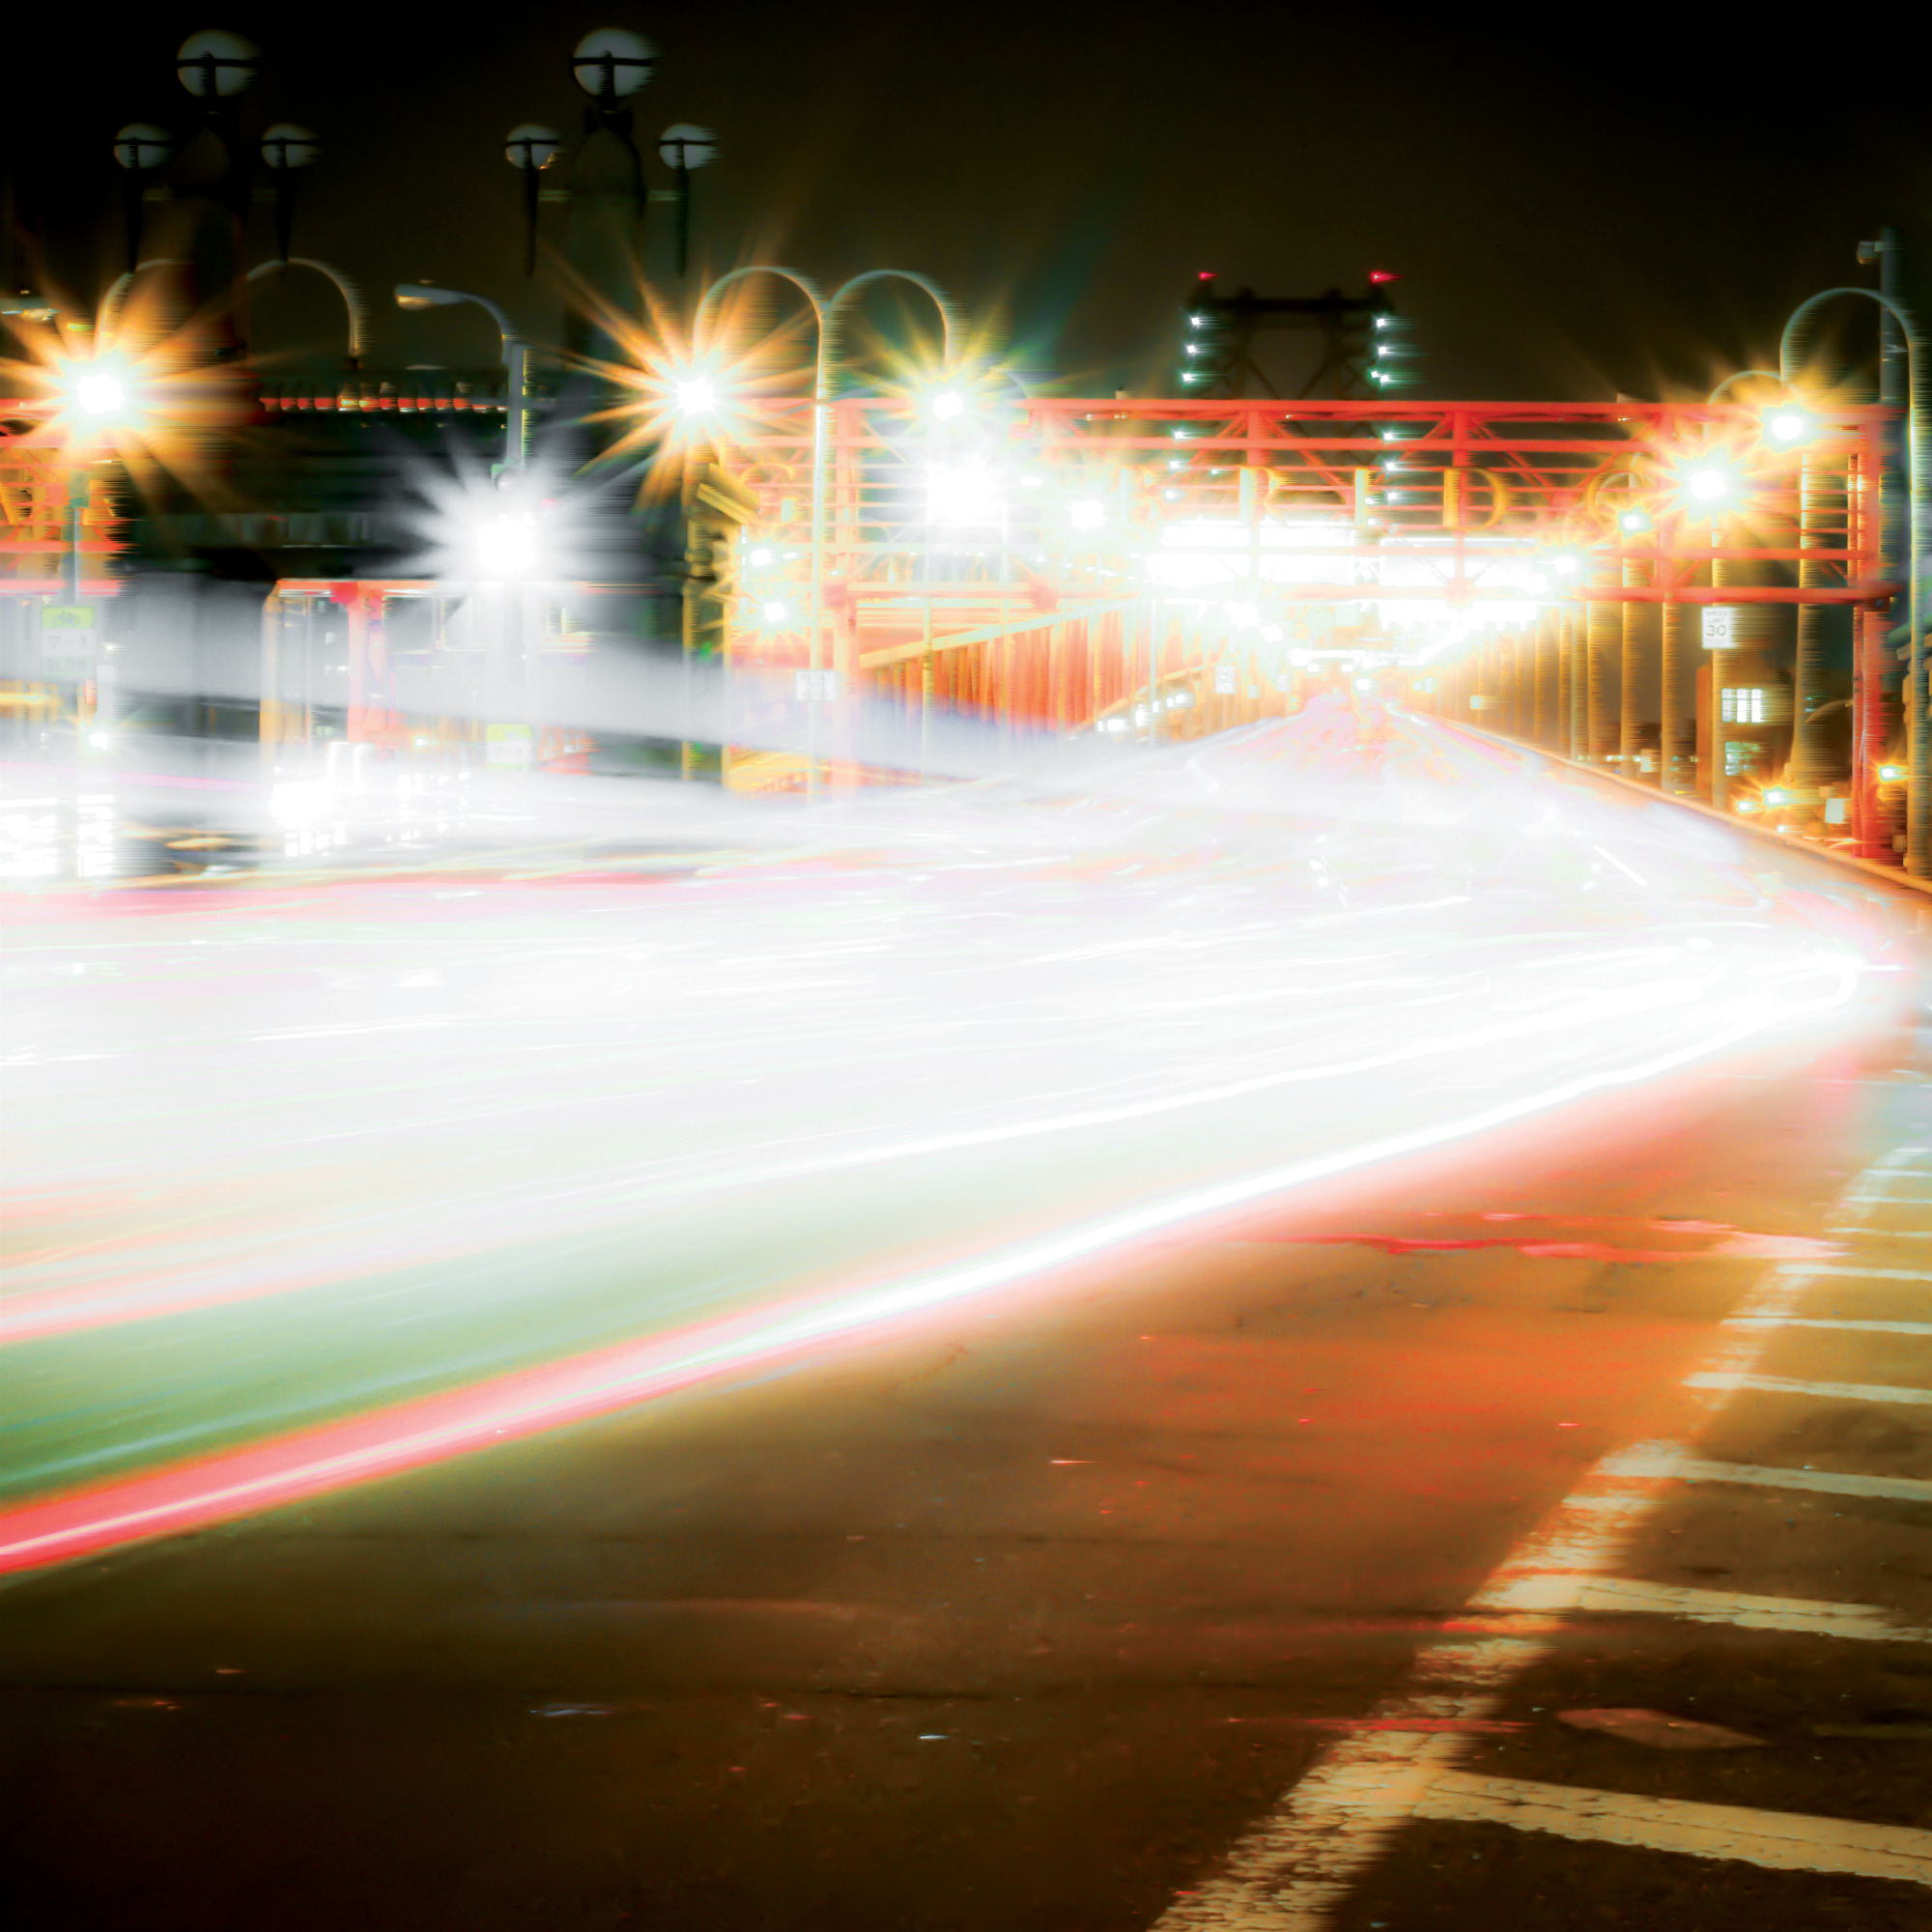 Long exposure photograph taken in the Lower East Side in Manhattan, New York, Taken at night of cars driving by near the Williamsburg Bridge